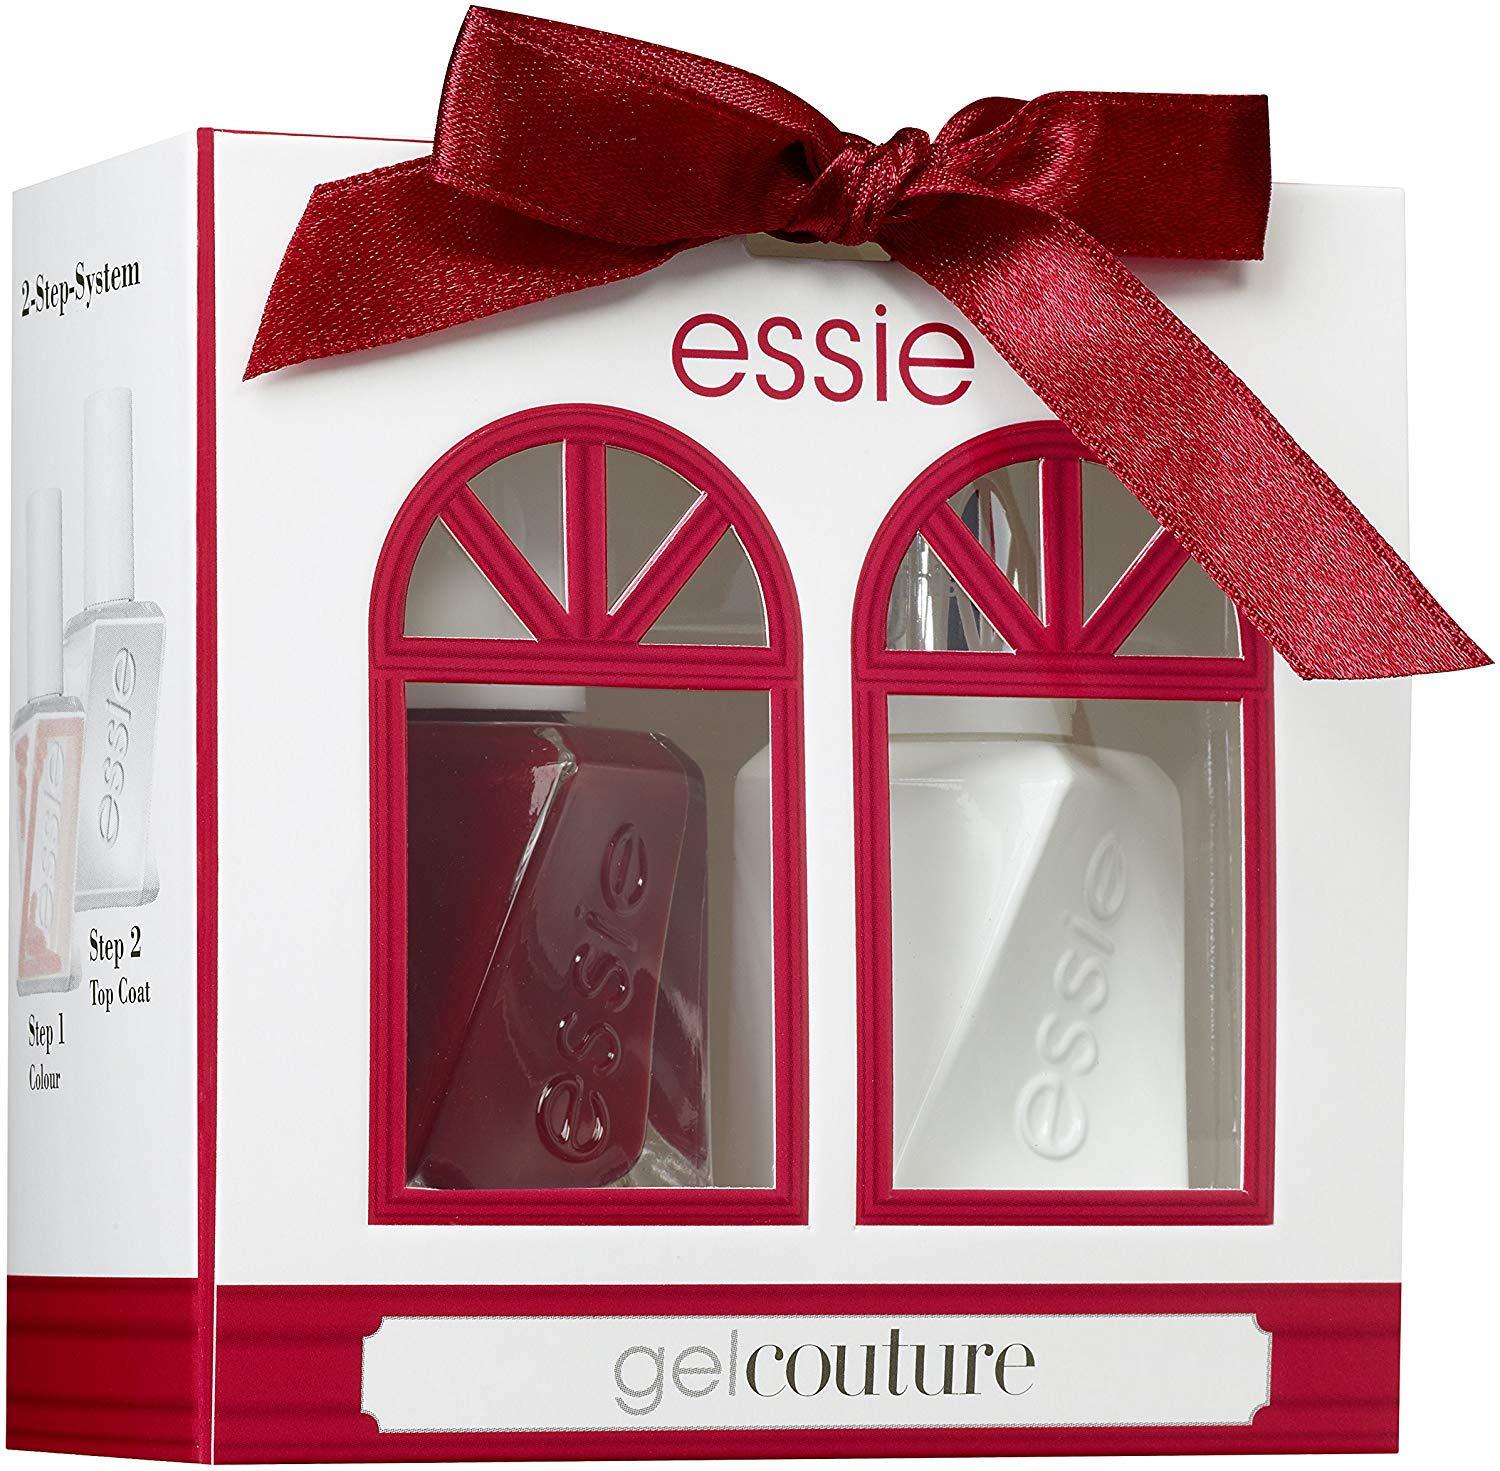 essie Nail Polish Gel Couture Duo Christmas Gift Set